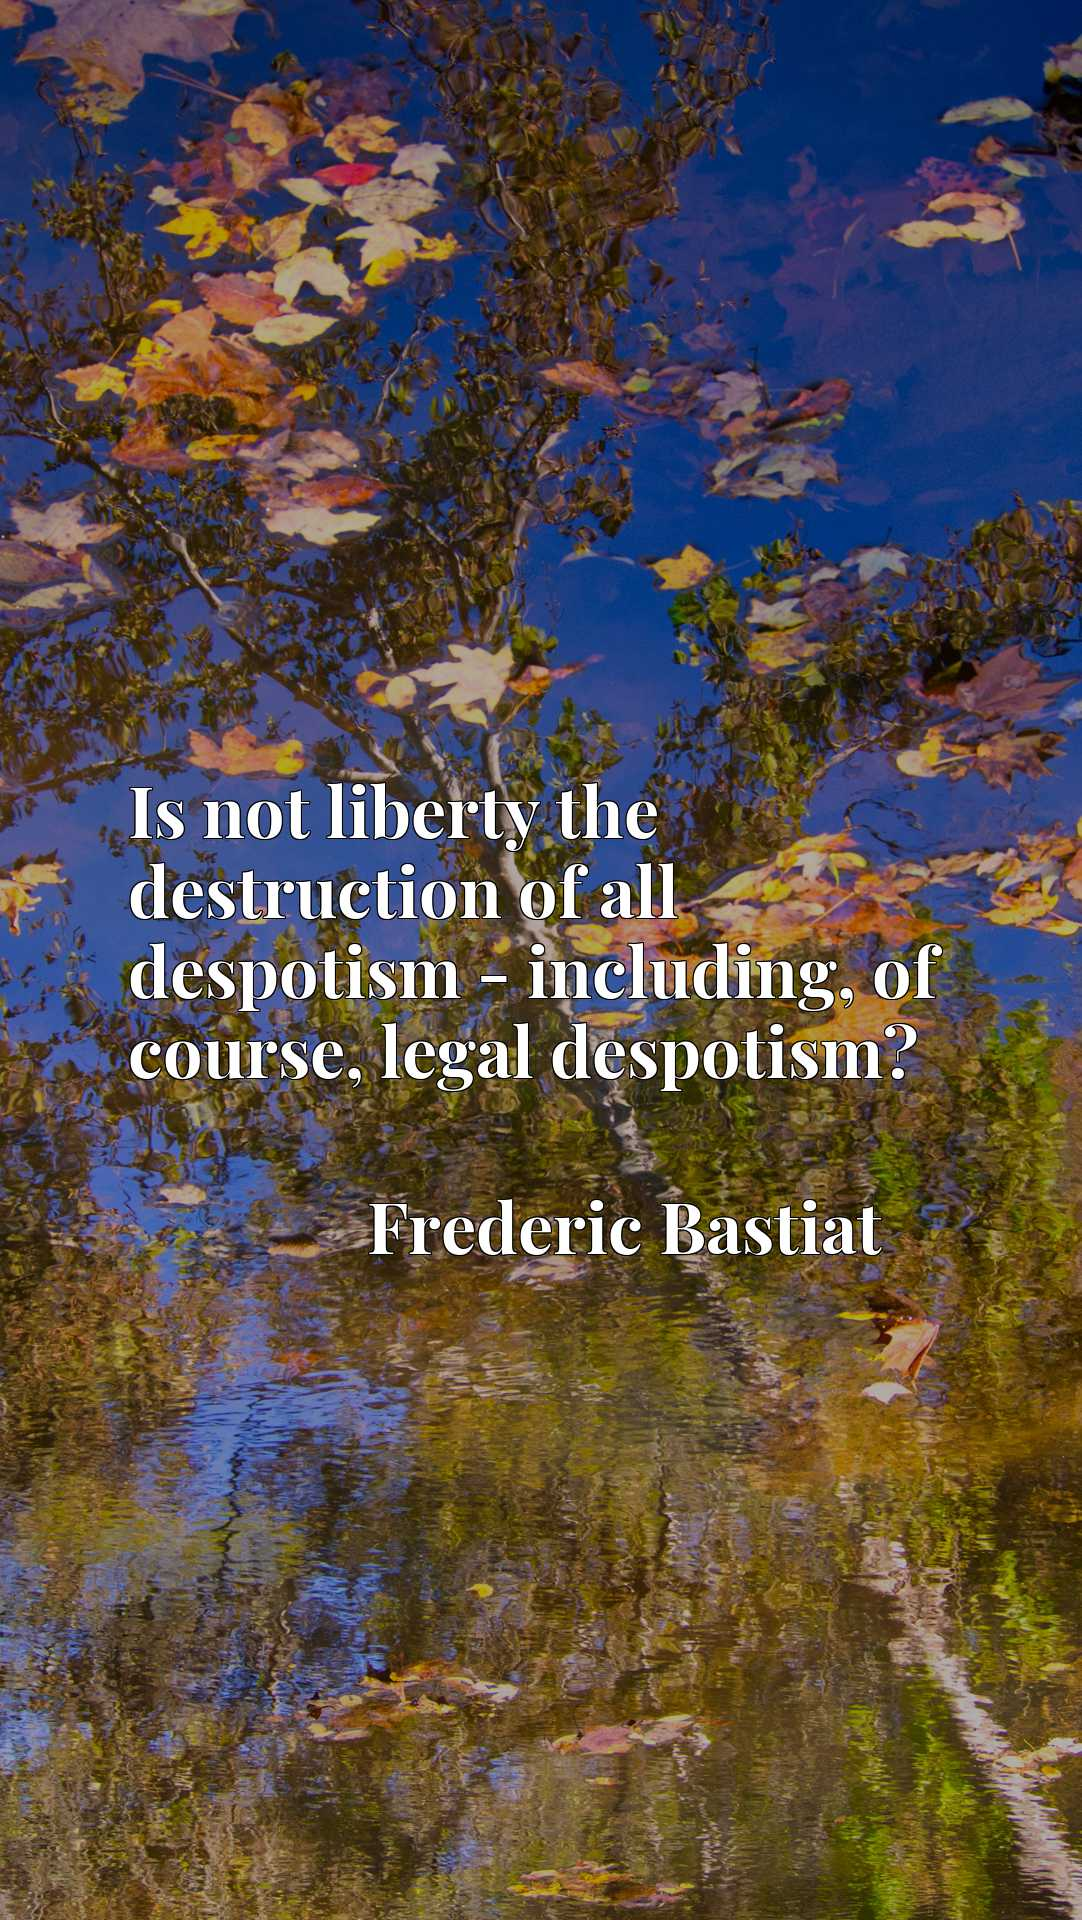 Is not liberty the destruction of all despotism - including, of course, legal despotism?